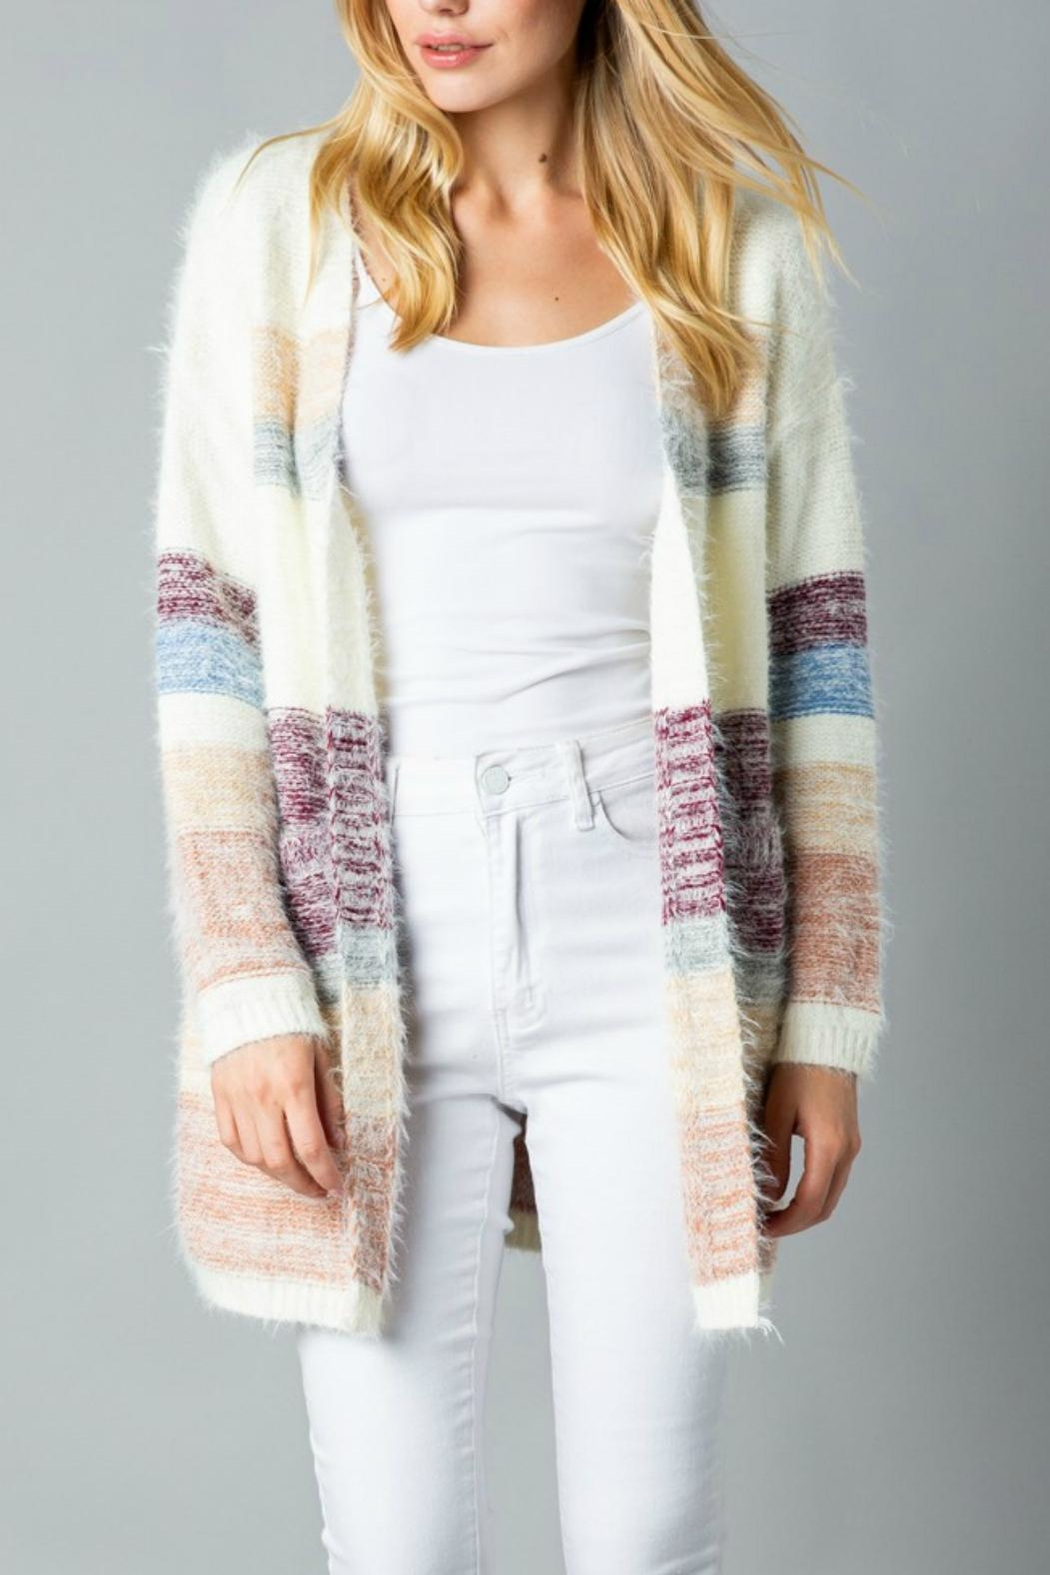 Pretty Little Things Mohair Colorblock Cardigan - Main Image